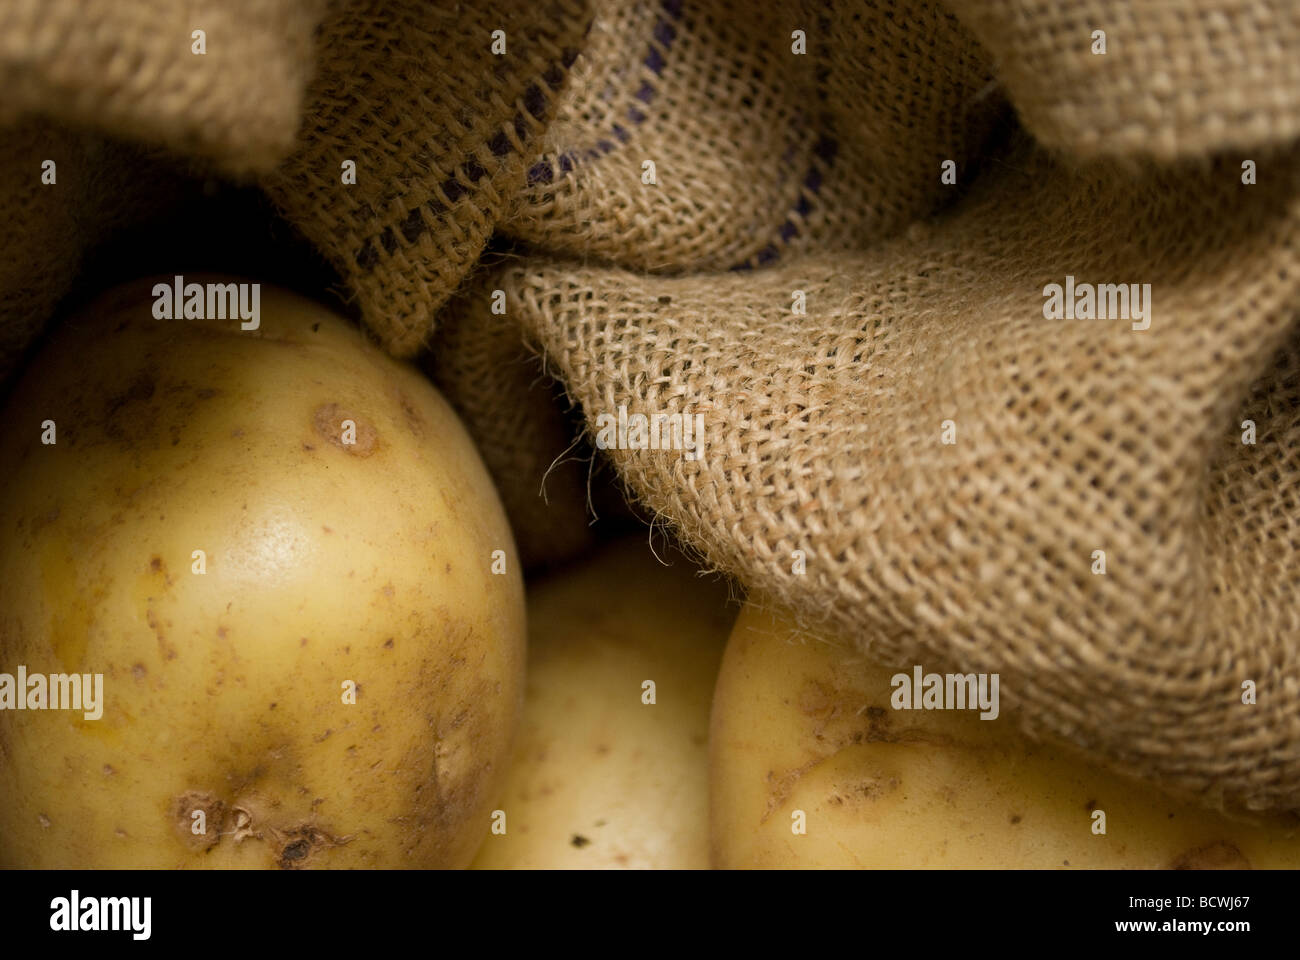 Potatoes being kept in hessian in a basket. - Stock Image